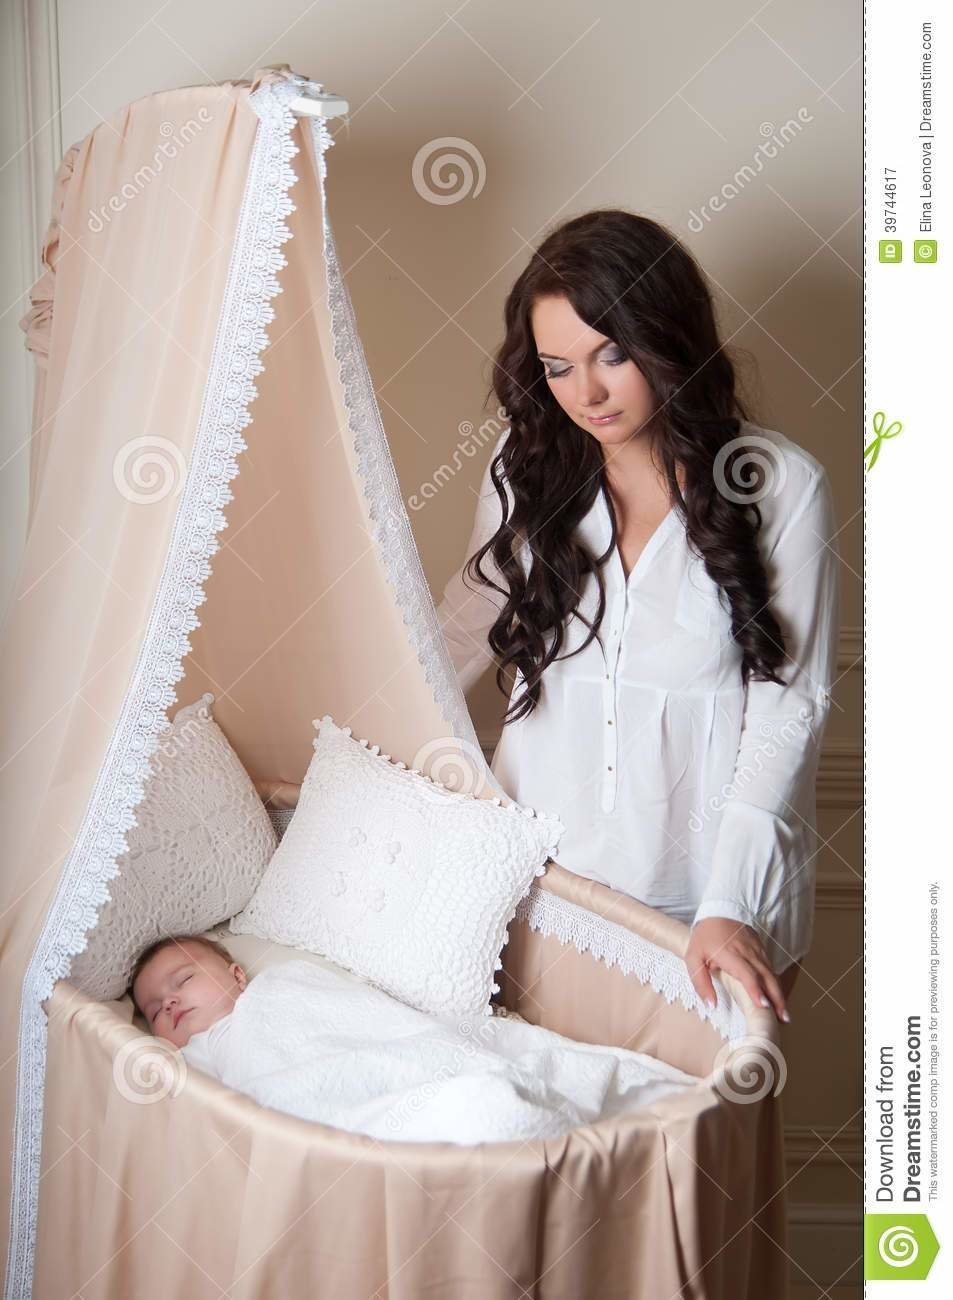 Best Mother With Baby Baby Sleep On Bed Cradle Stock Image Image 39744617 With Pictures